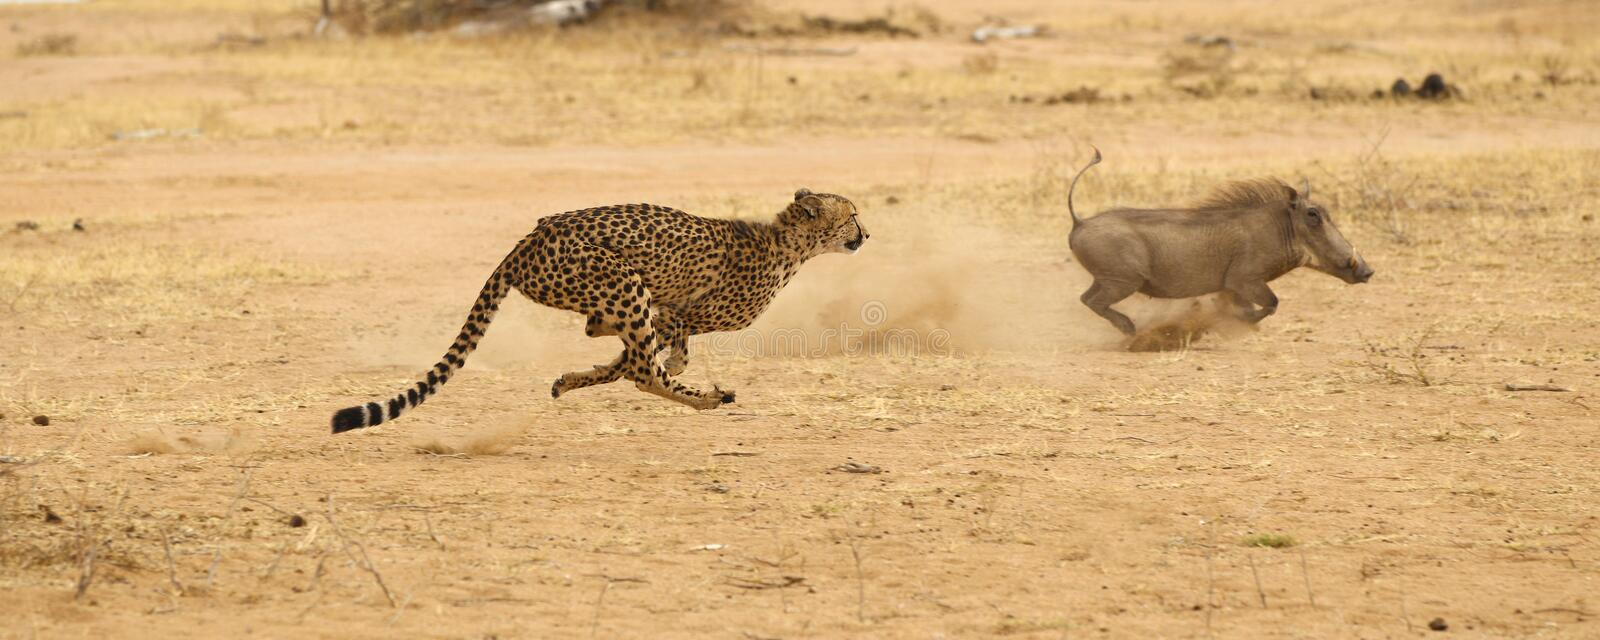 Guépard chassant le warthog photographie stock